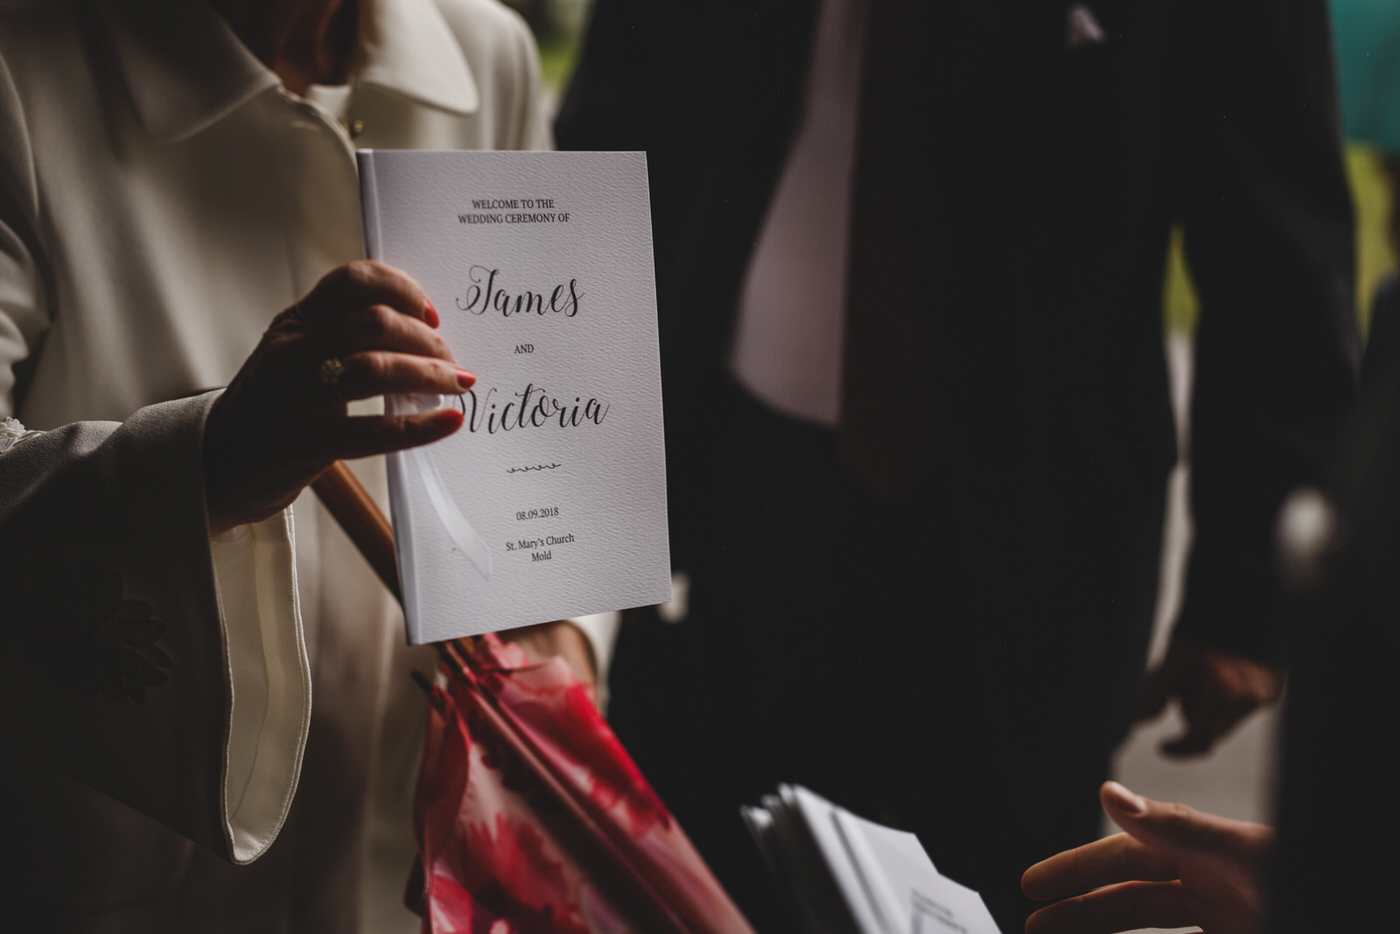 a guest holds out a copy of the wedding ceremony order of service